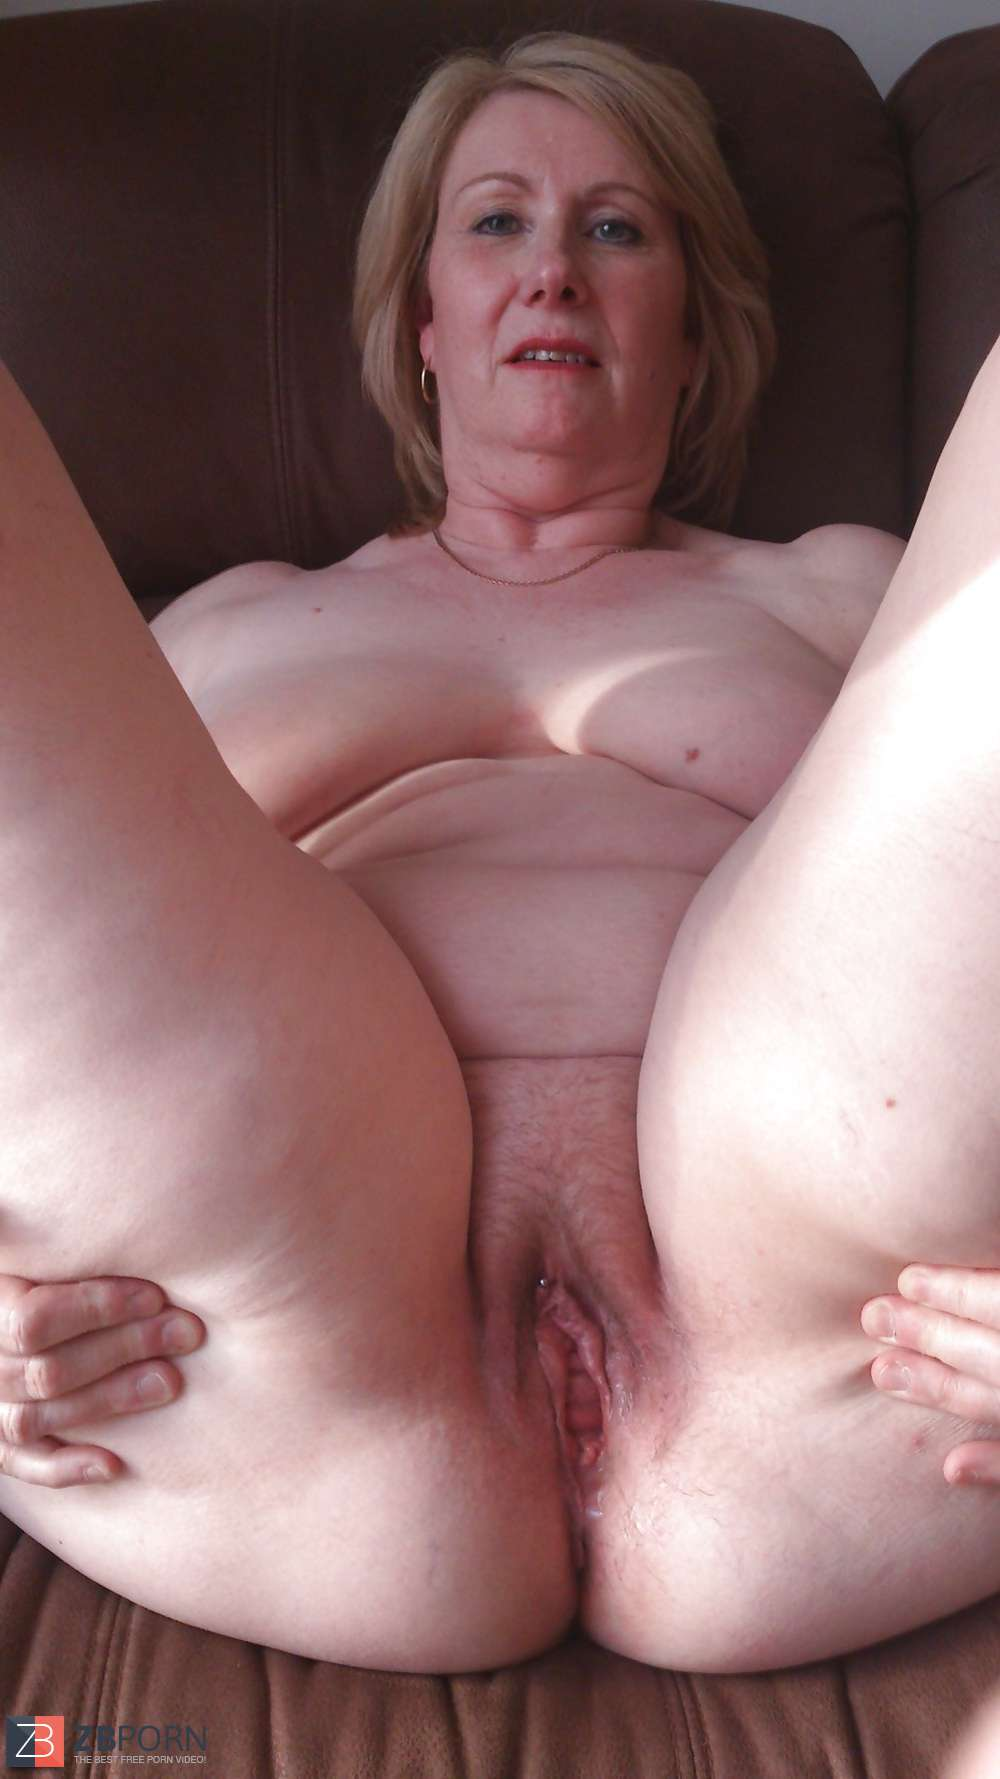 Redhead nude thumbnails breasts softcore